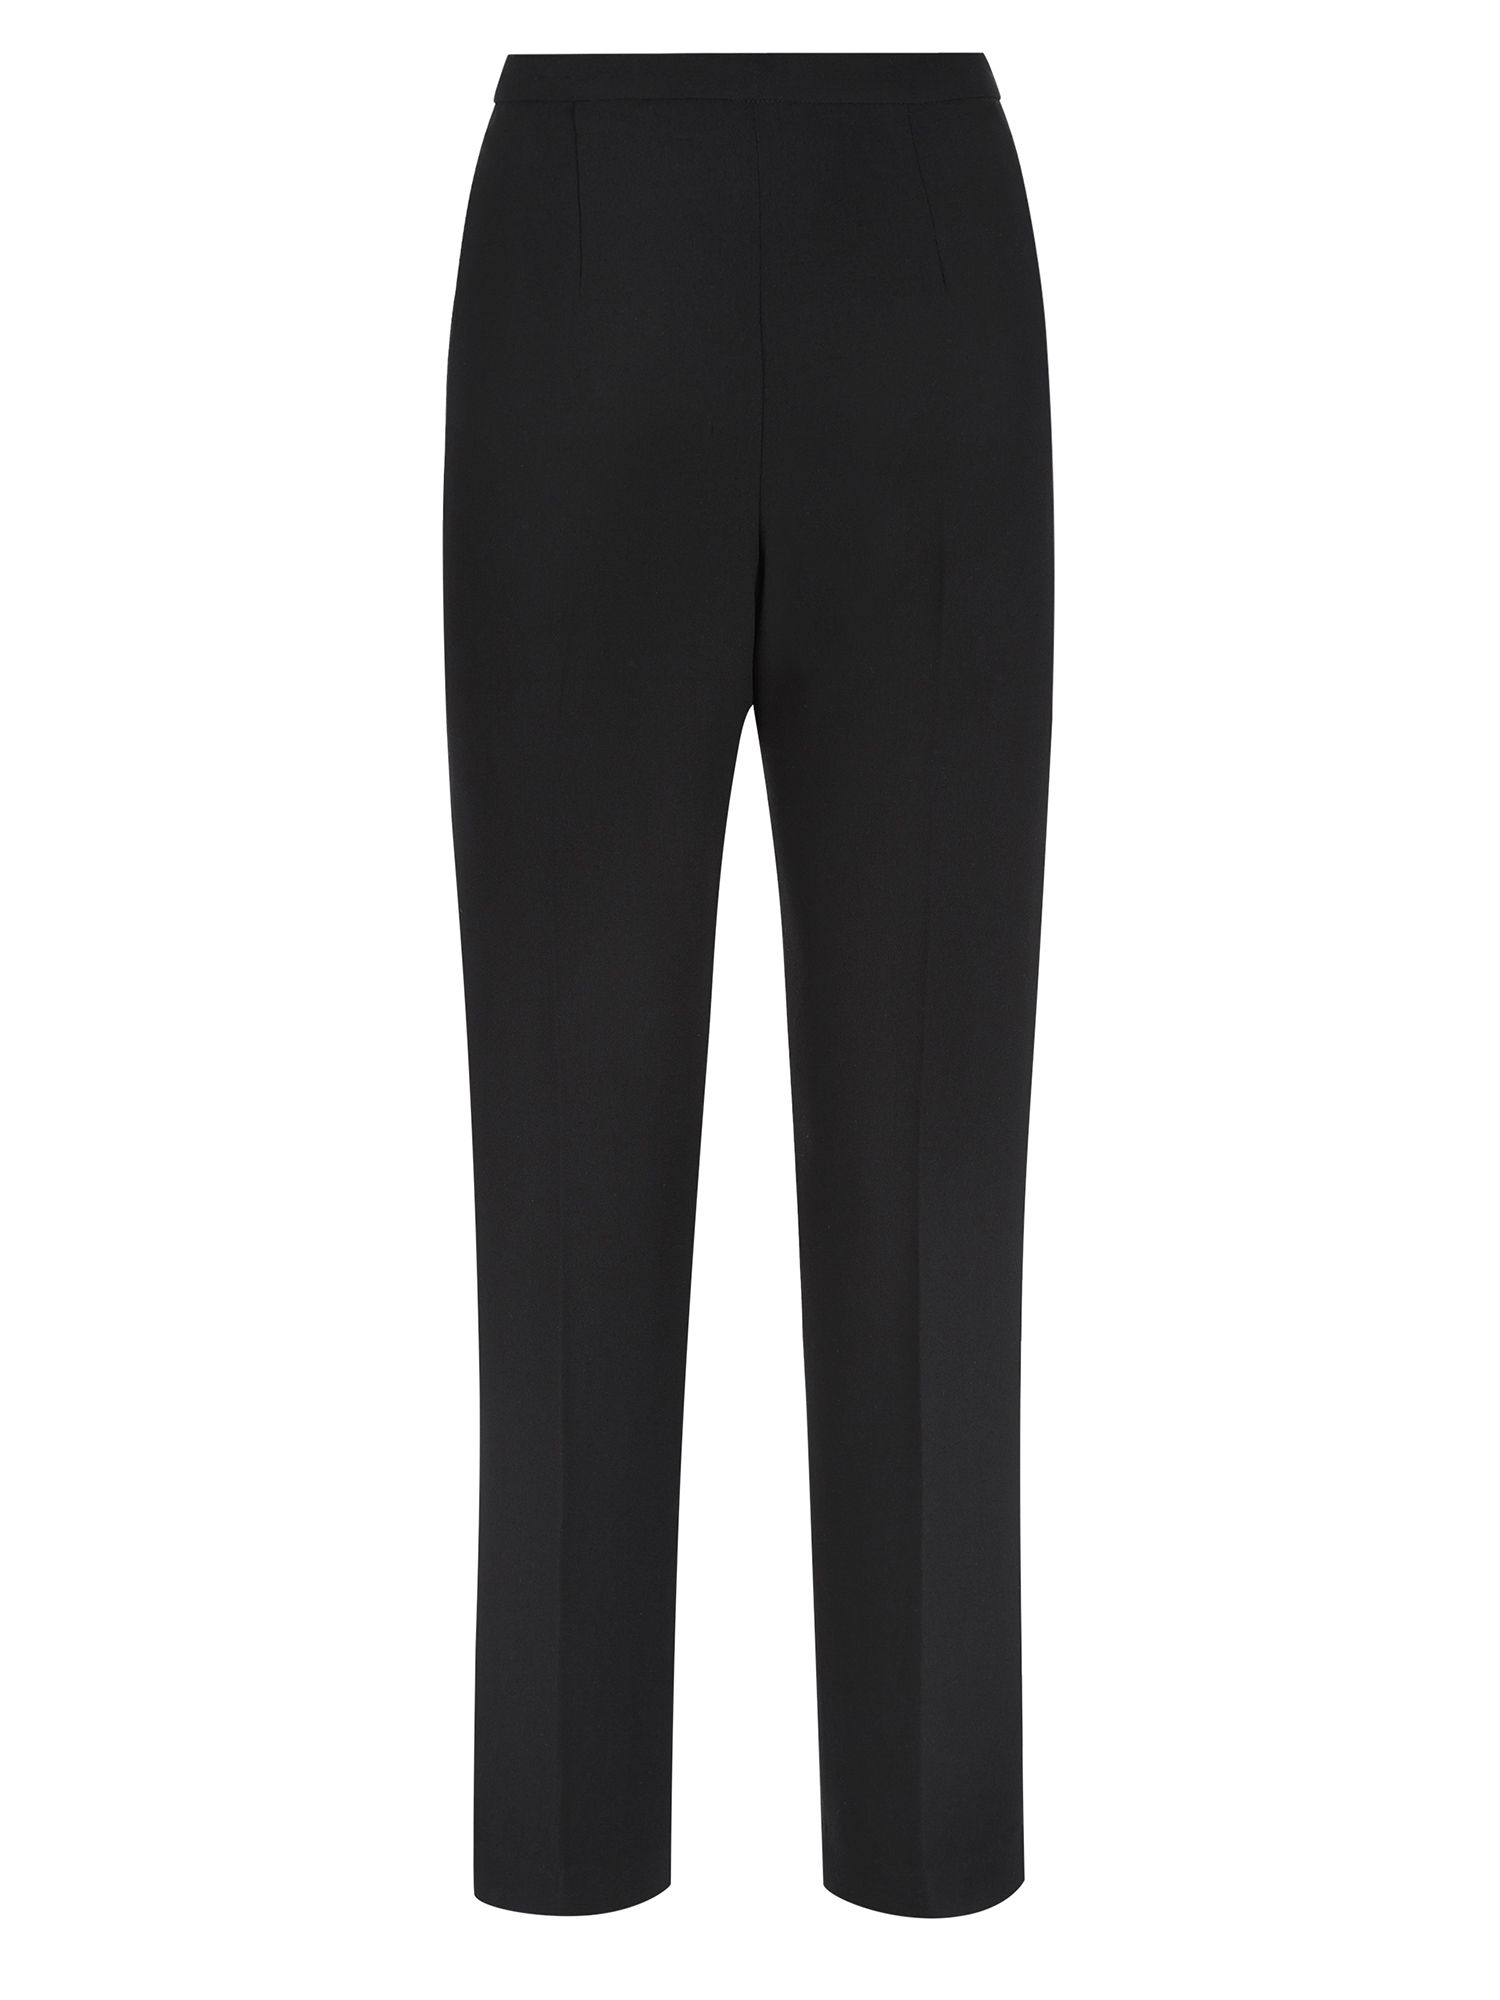 Eastex Straight Leg Trouser, Black